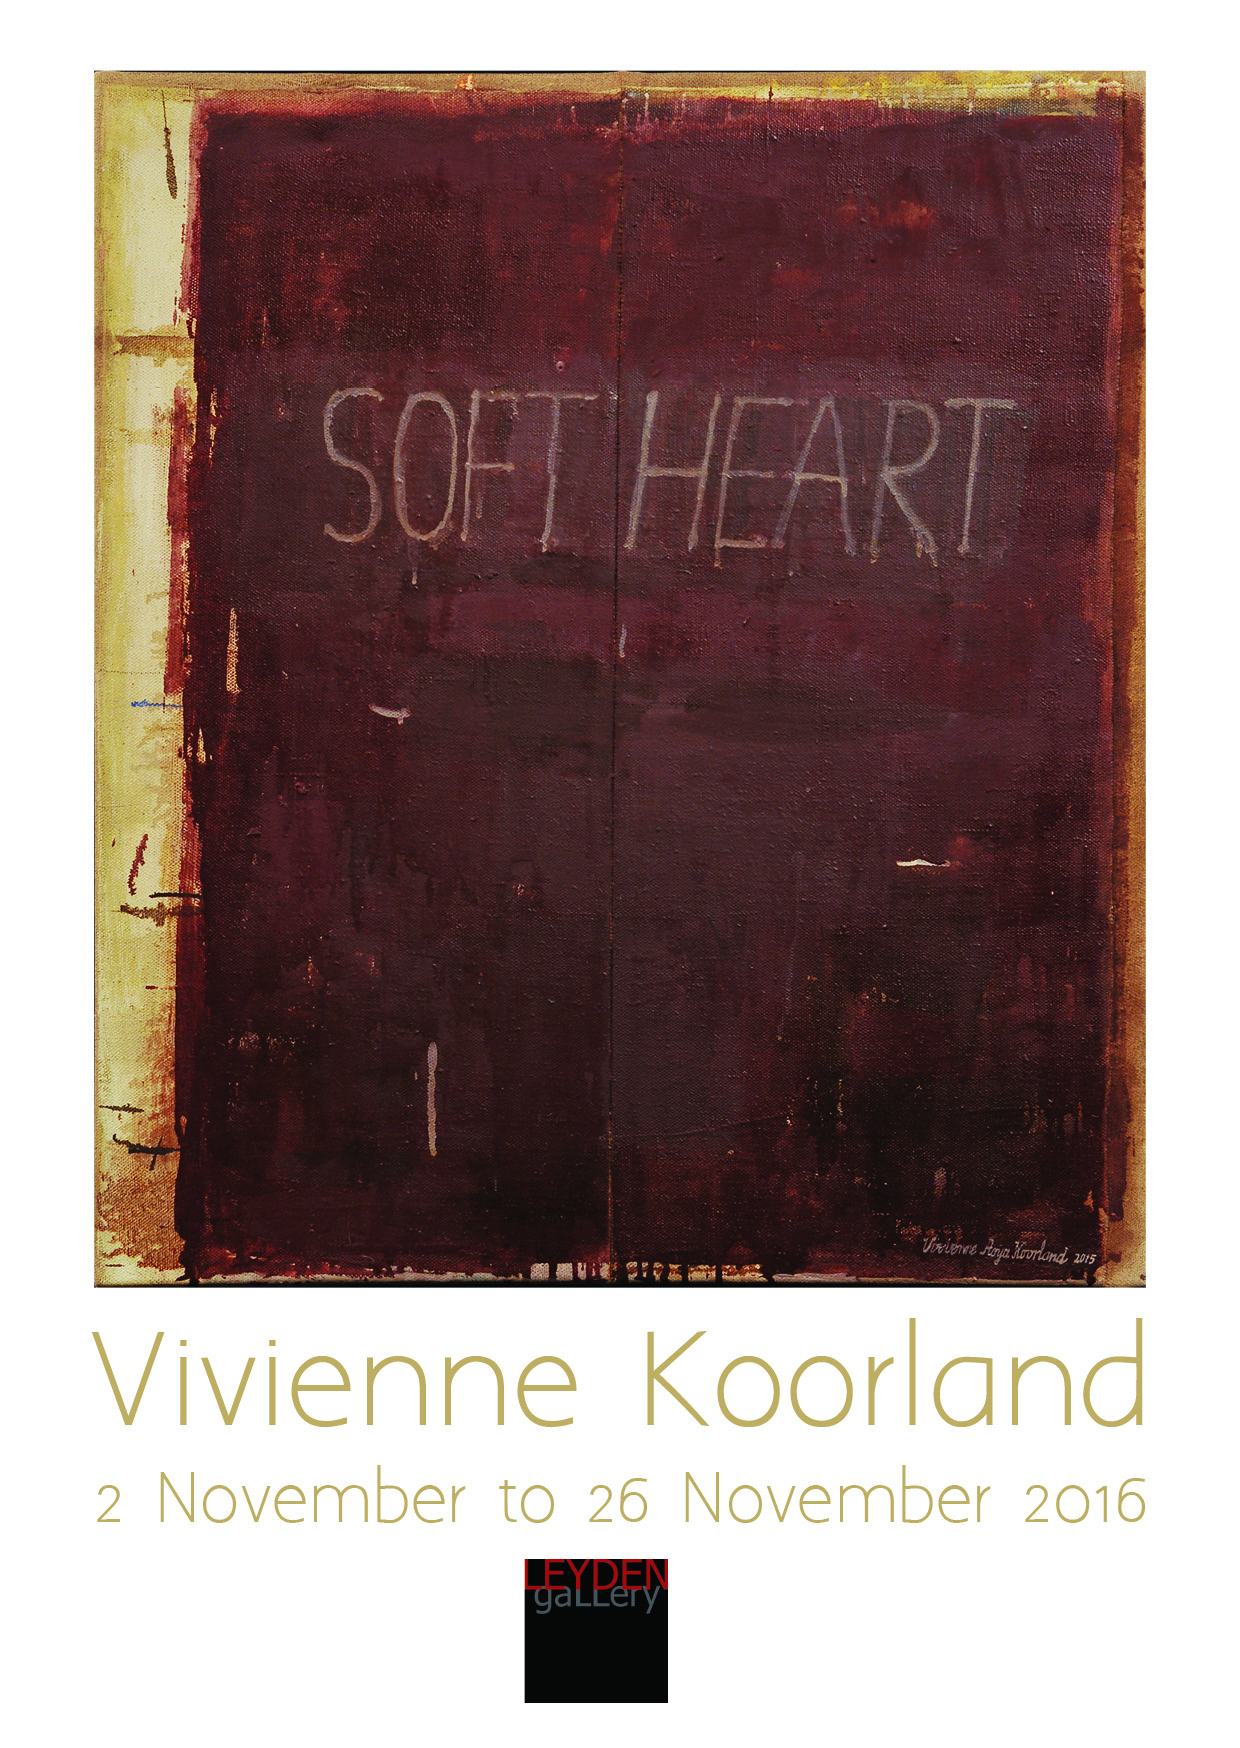 SOFT HEART Vivinenne Koorland - Conversations in Letters and Lines